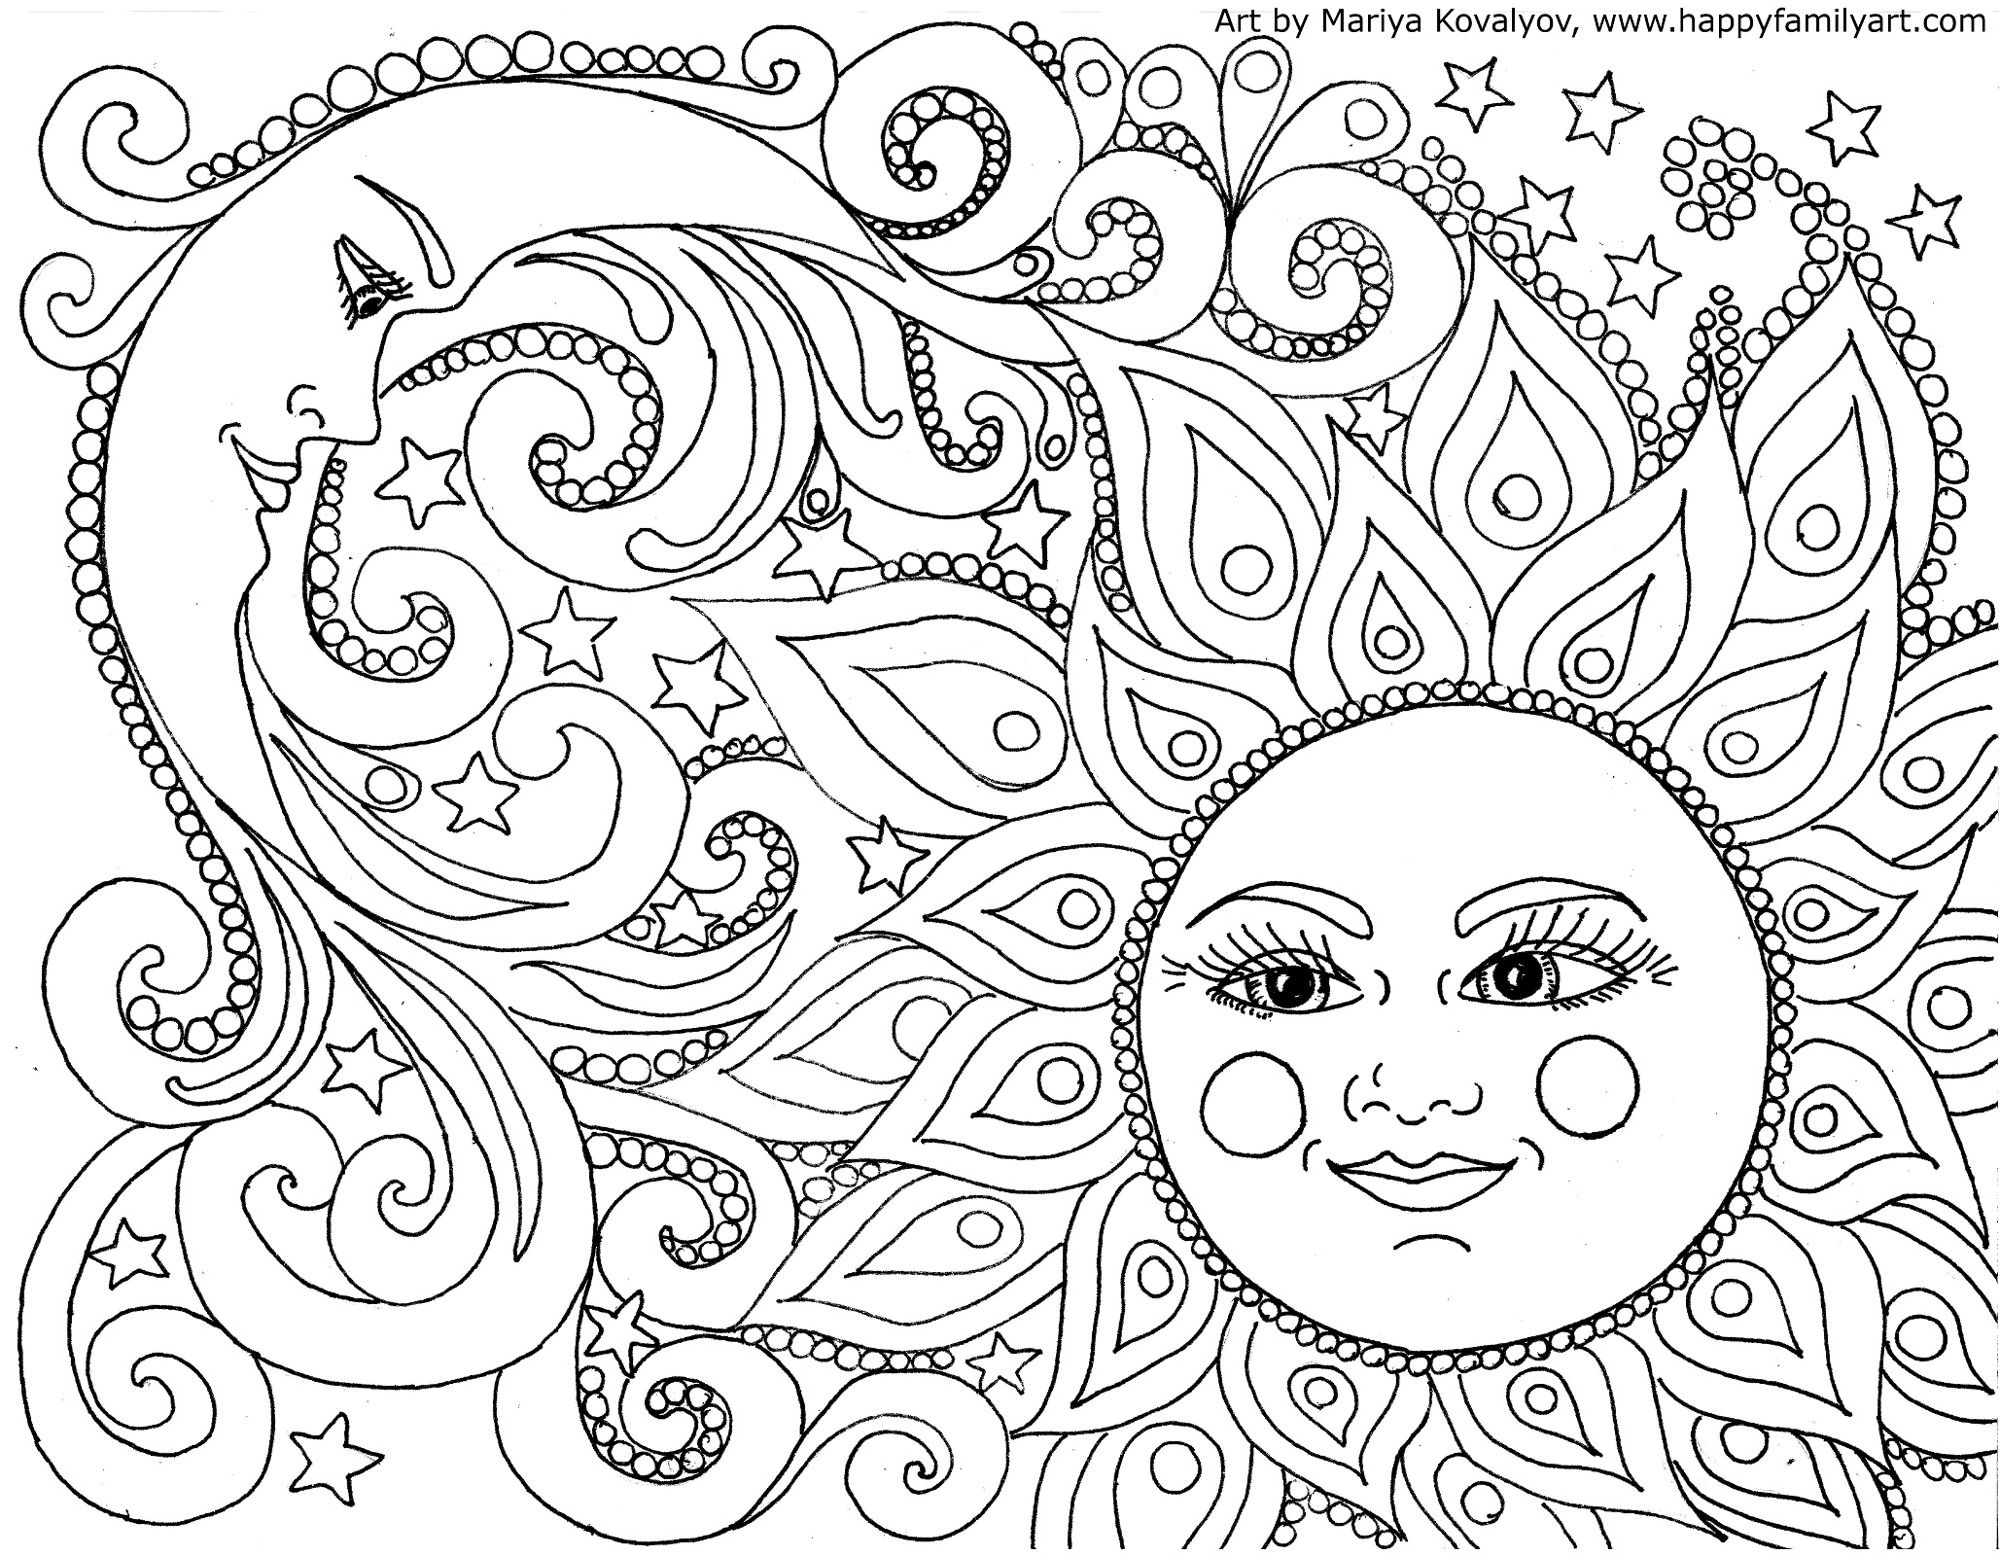 original and fun coloring pages | Share Your Craft | Pinterest ...